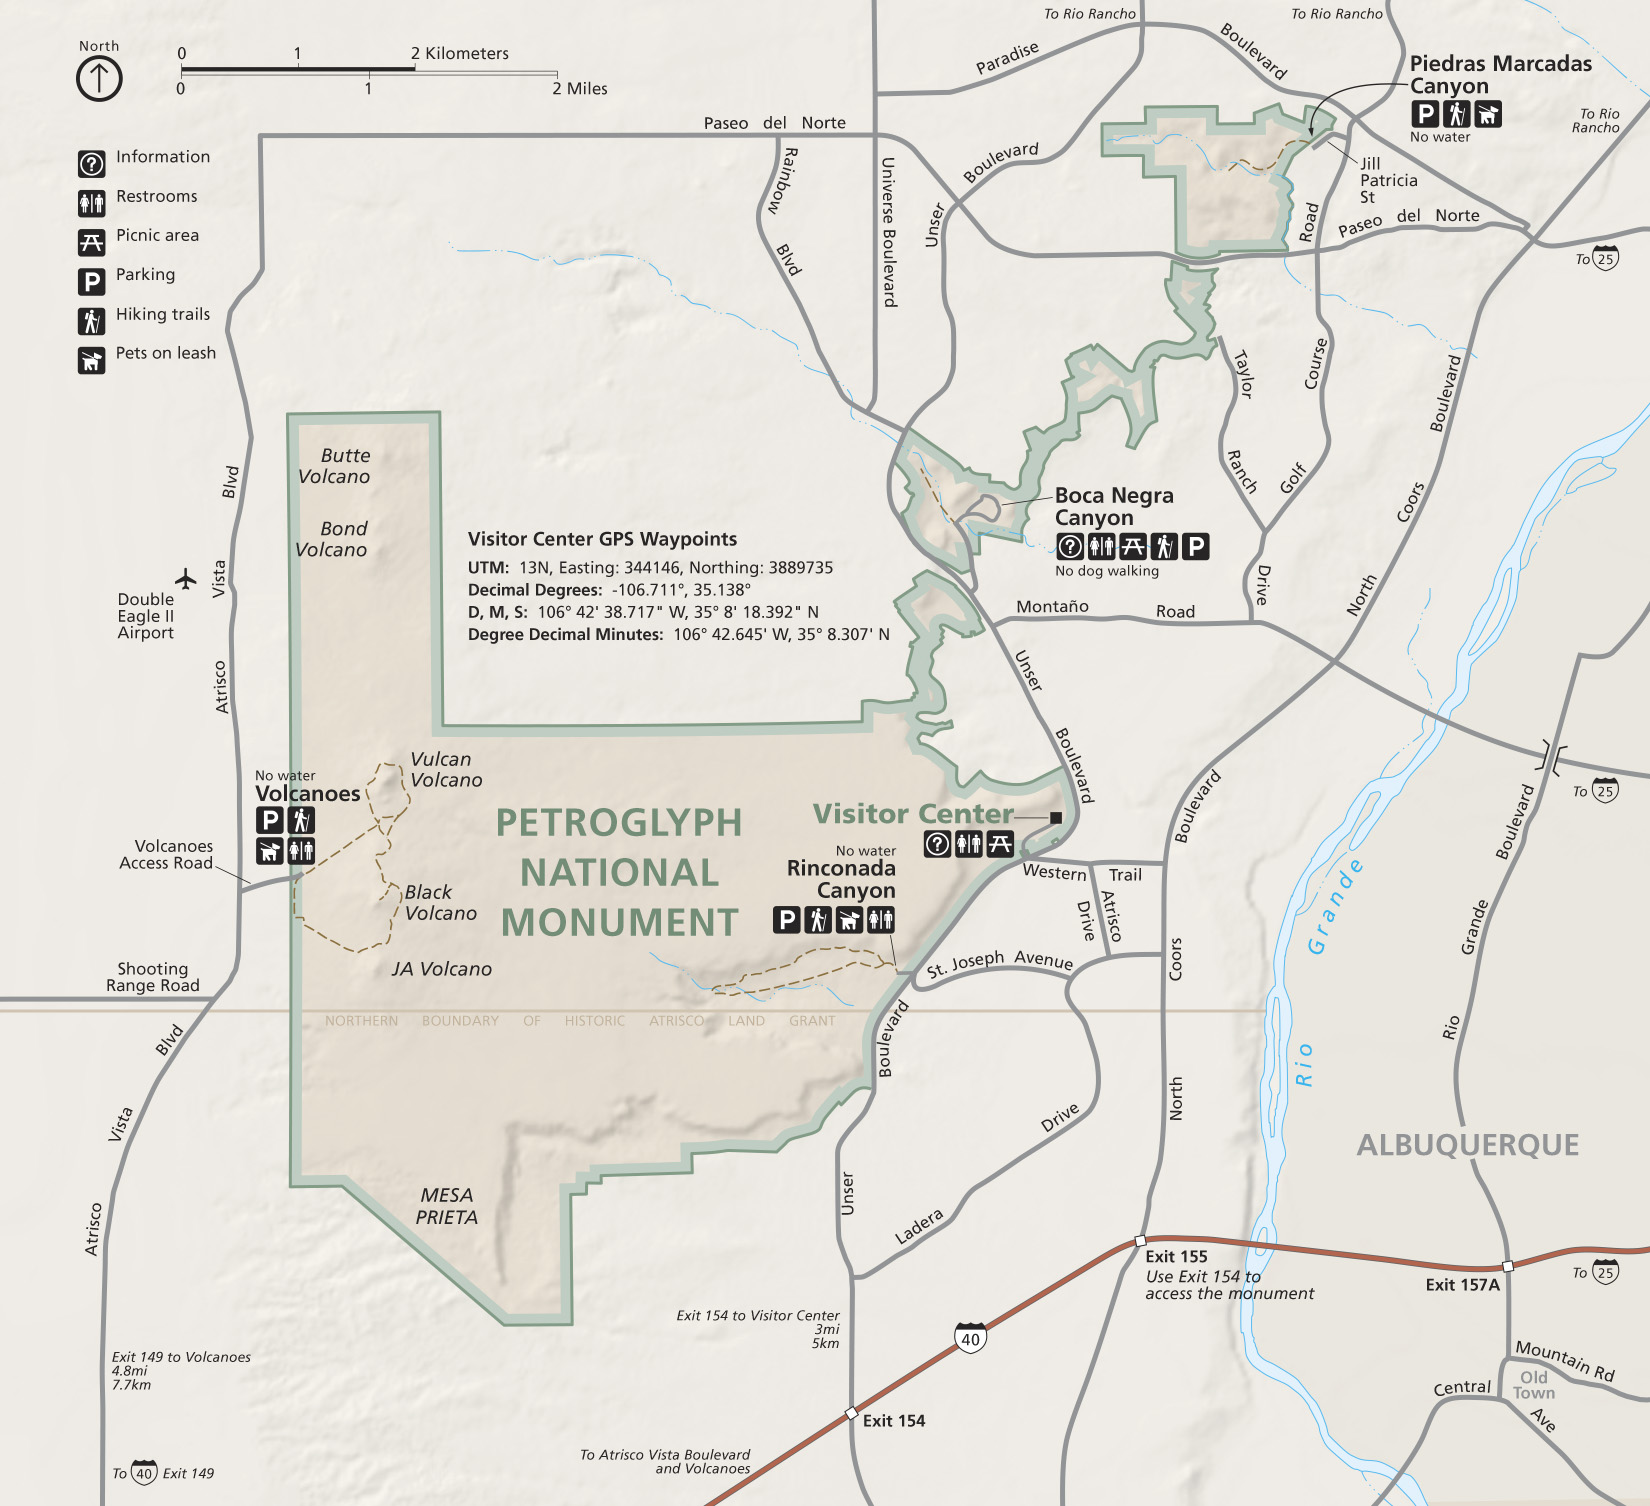 Official map of Petroglyph National Monument